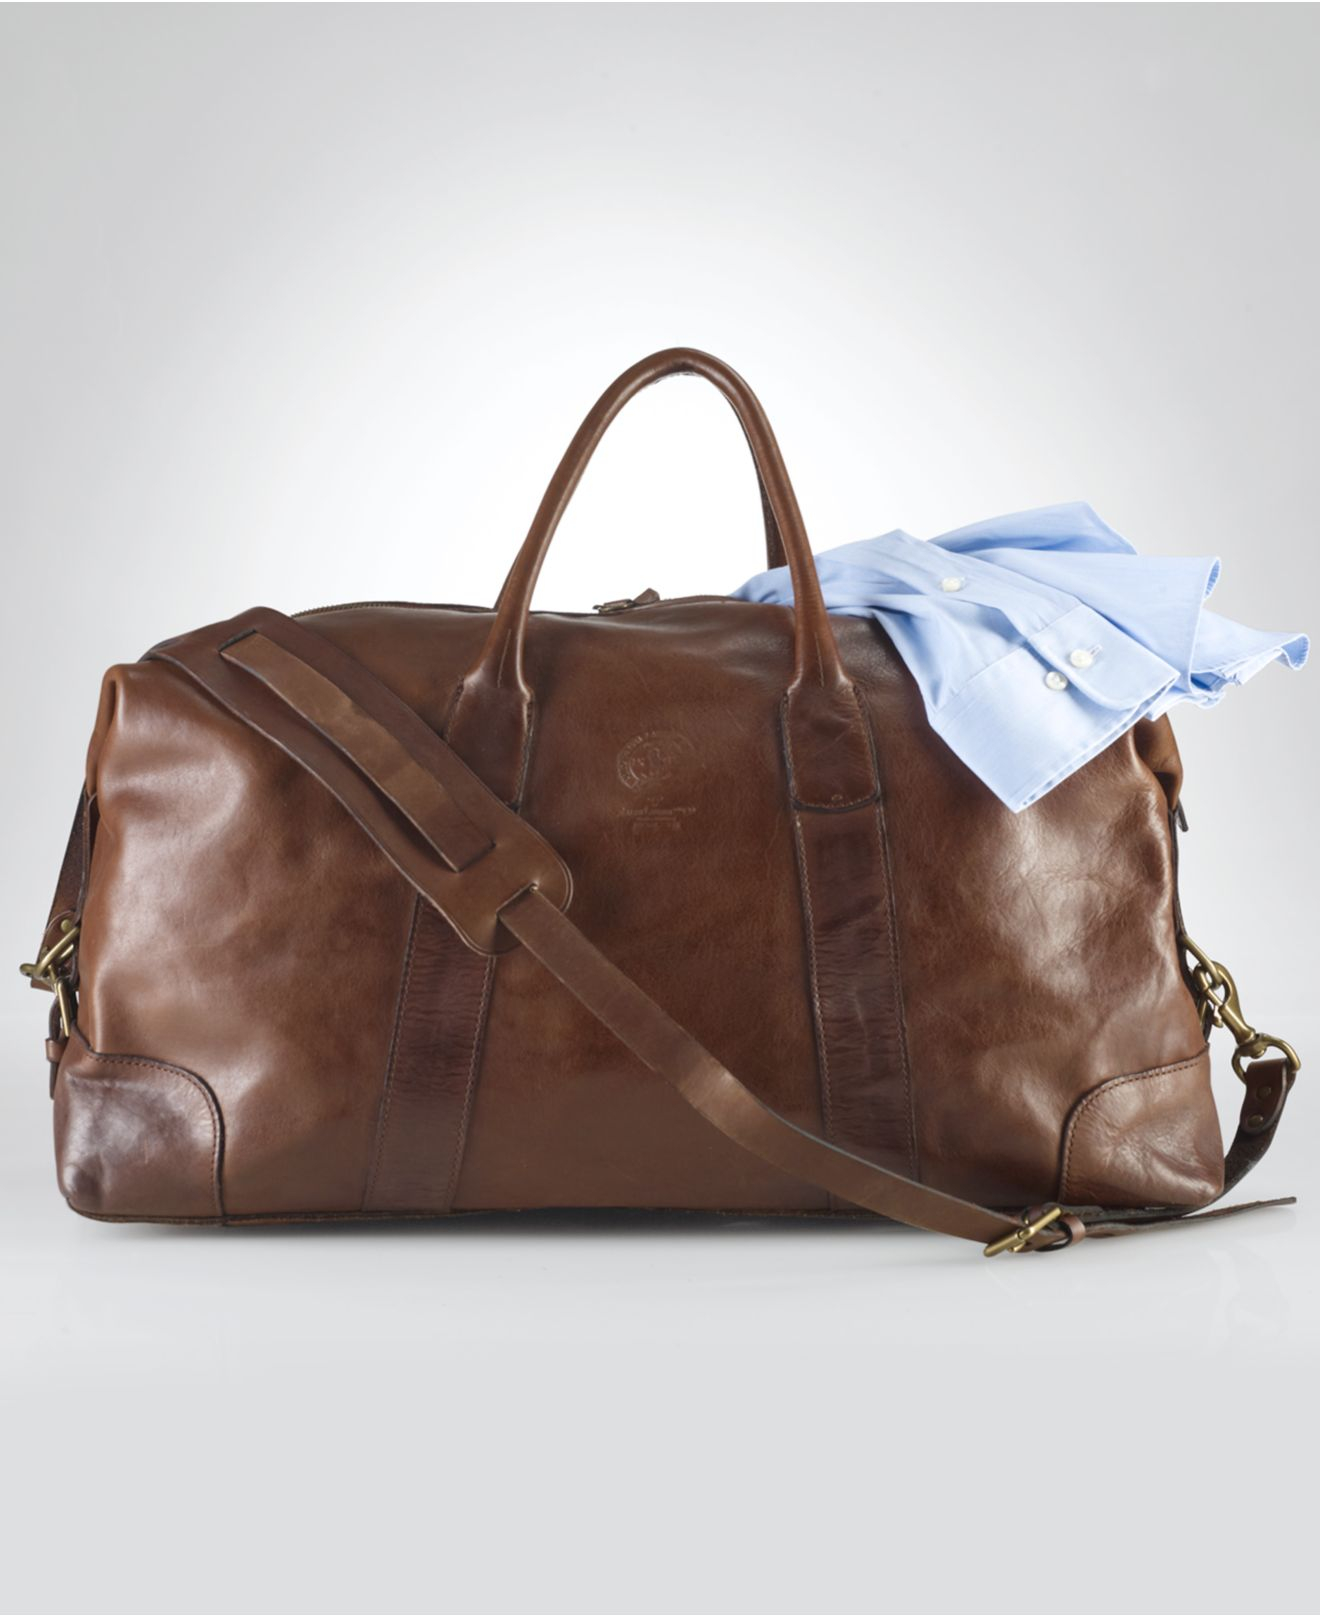 17500c9a7120 Polo Ralph Lauren Core Leather Duffle Bag in Brown for Men - Lyst